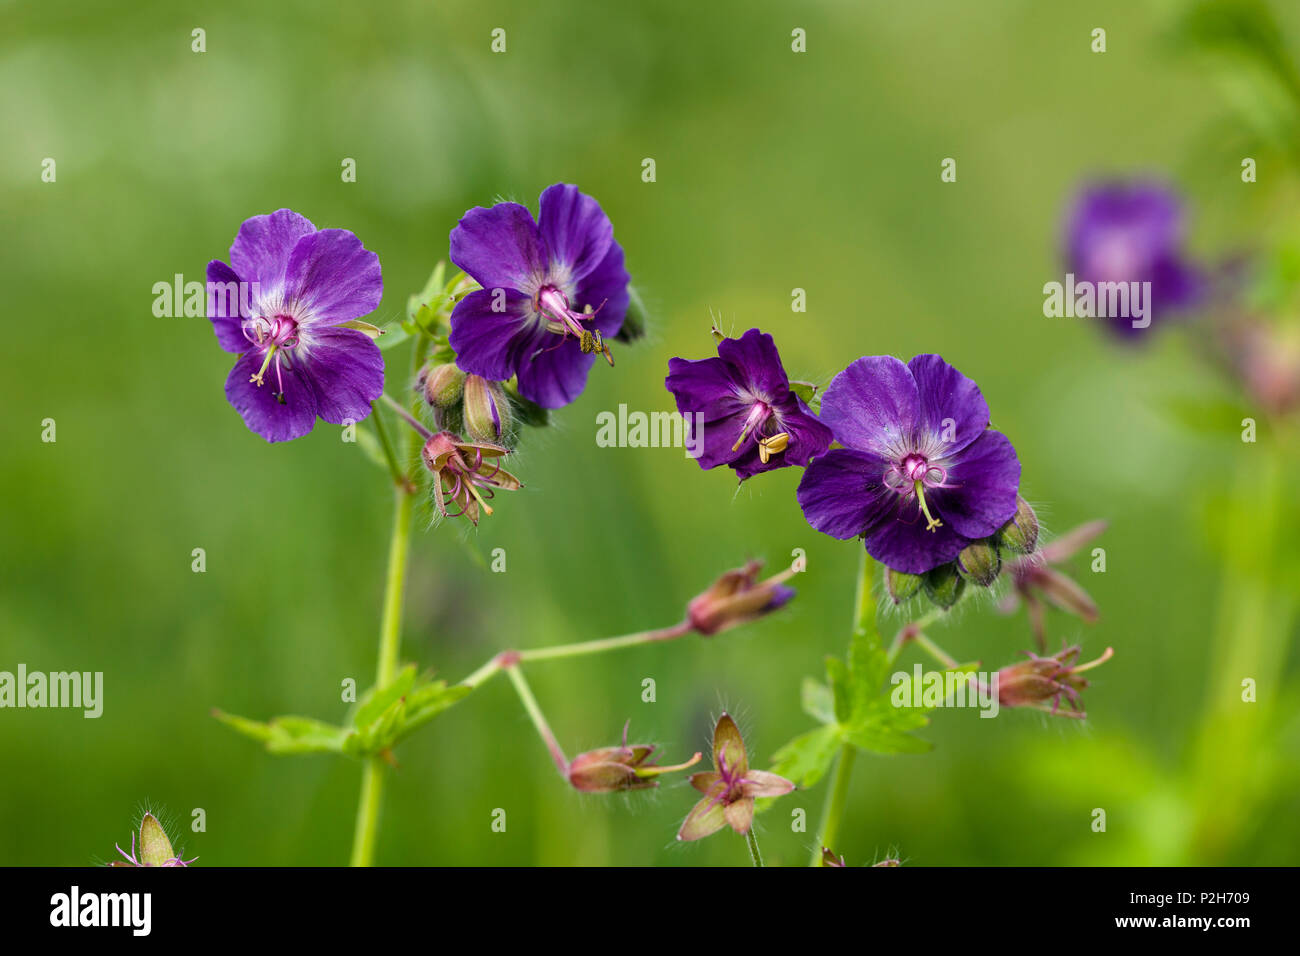 Dusky Cranesbill, Geranium phaeum, Bavaria, Germany Stock Photo